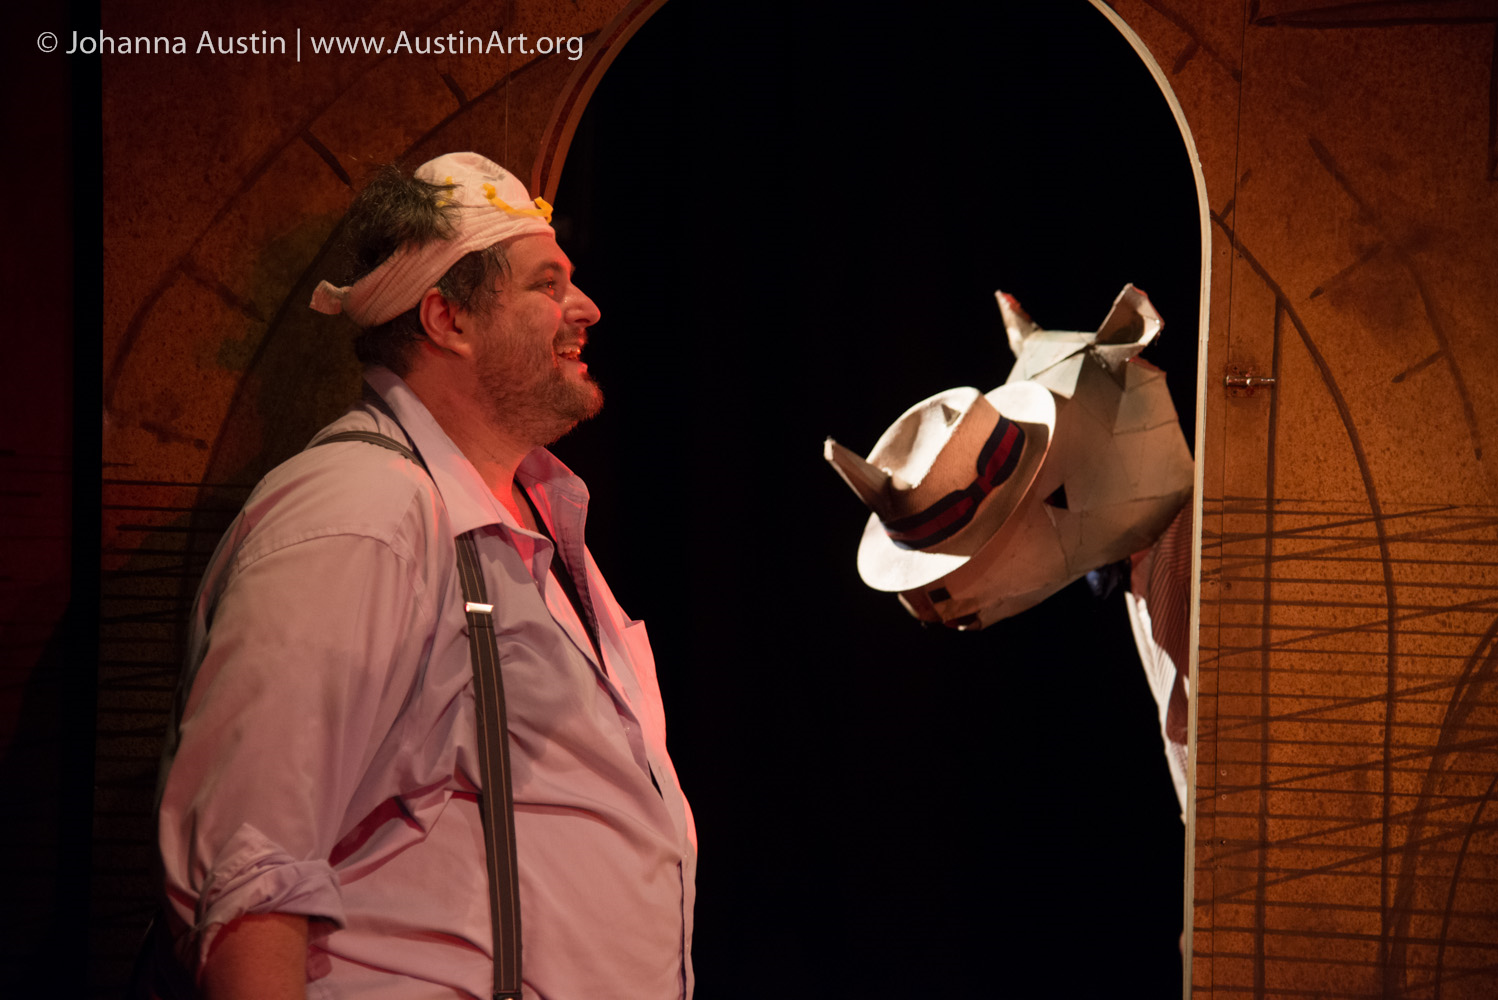 Ethan Lipkin stars as Bérenger in the IRC's RHINOCEROS (Photo credit: Johanna Austin @ AustinArt.org)